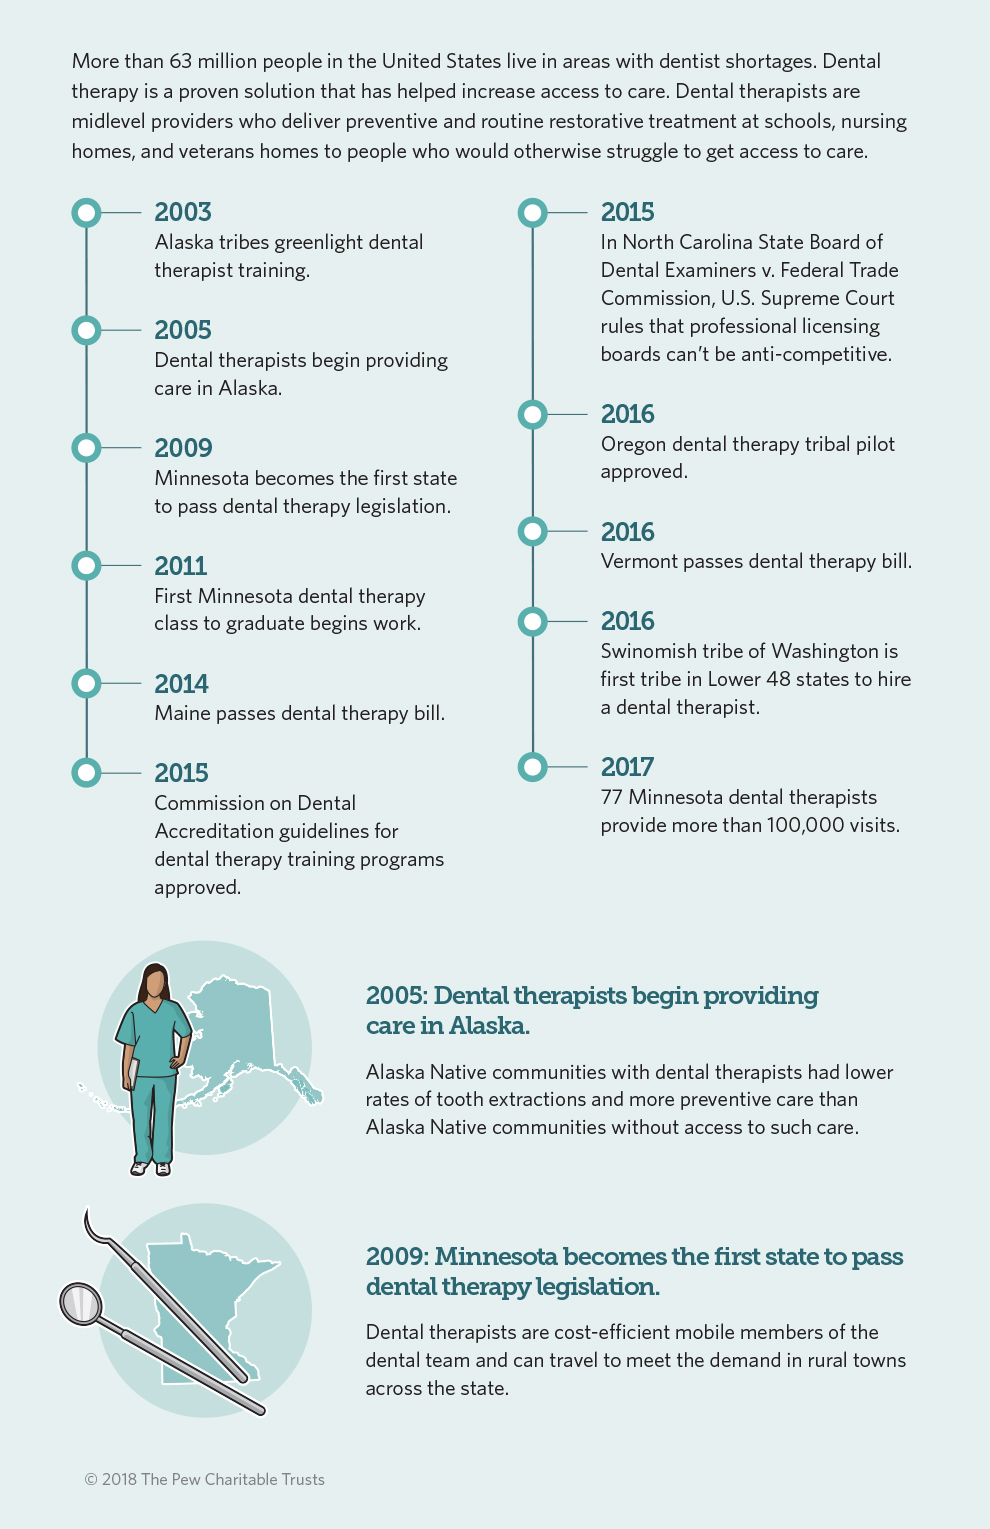 Dental Therapy Timeline | The Pew Charitable Trusts